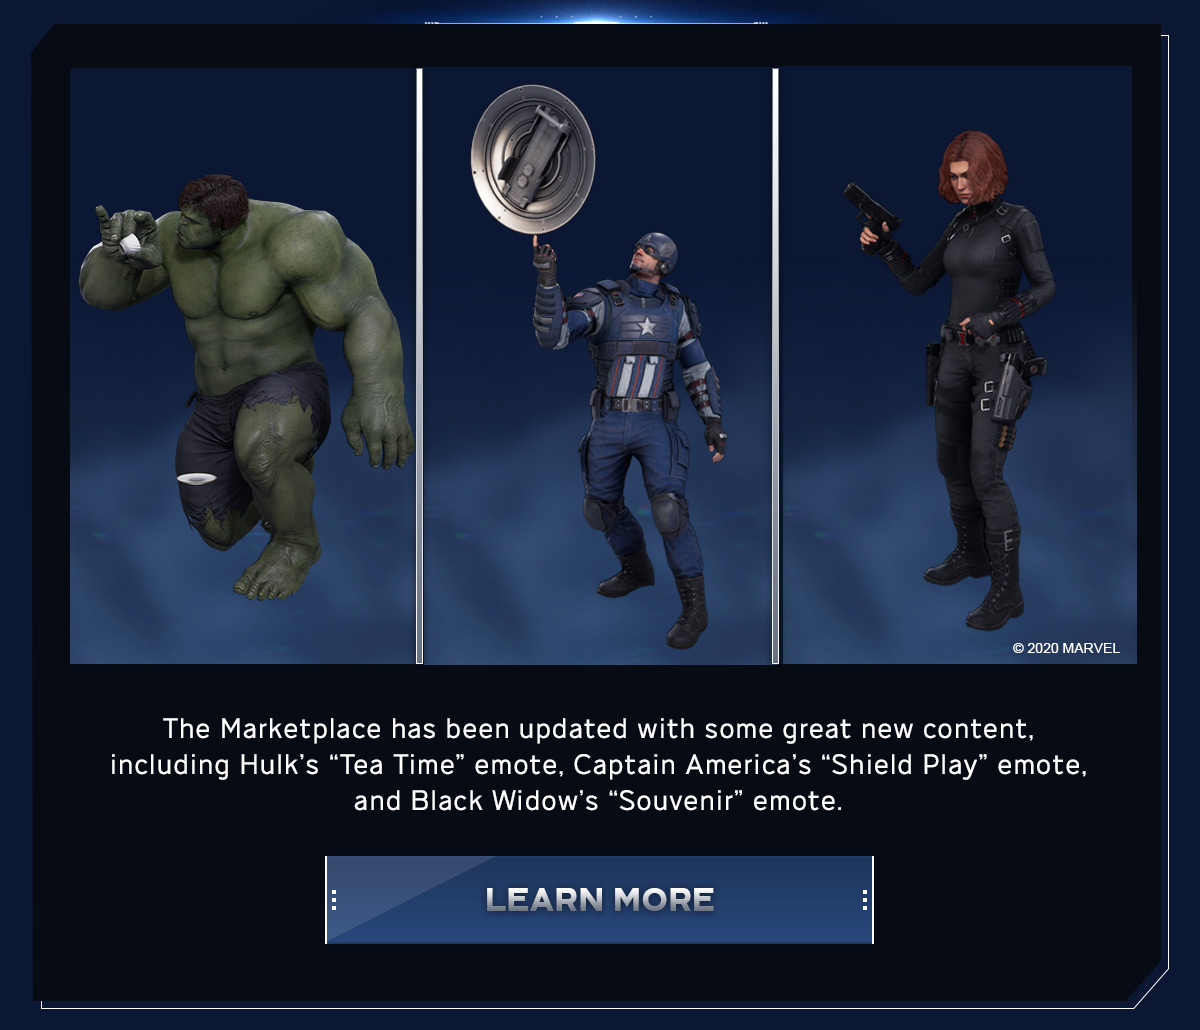 """The Marketplace has been updated with some great new content, including Hulk's """"Tea Time"""" emote, Captain America's """"Shield Play"""" emote, and Black Widow's """"Souvenir"""" emote."""